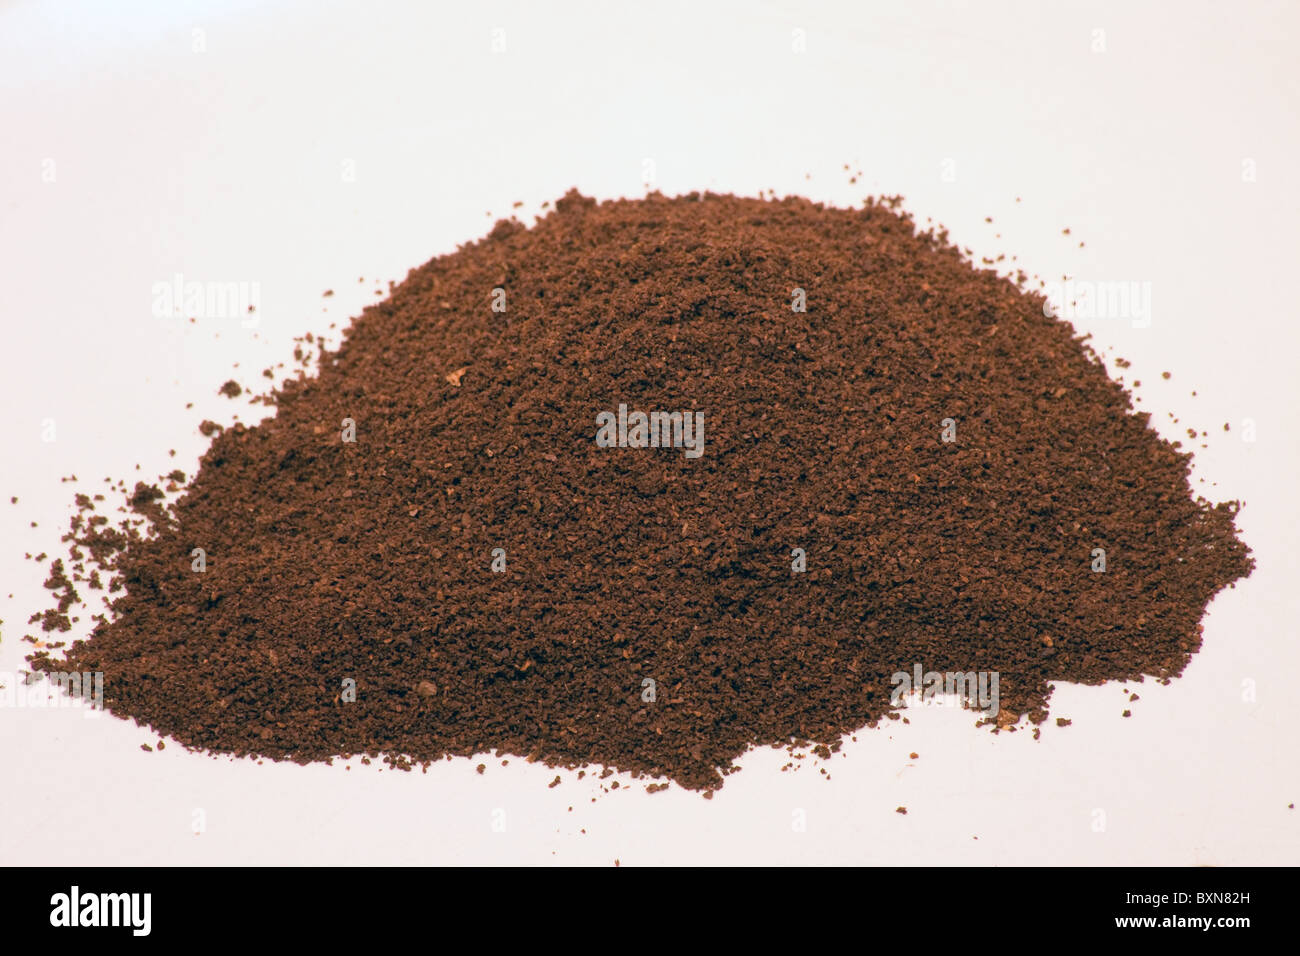 refined brown coffee ground energy stimulant drink - Stock Image